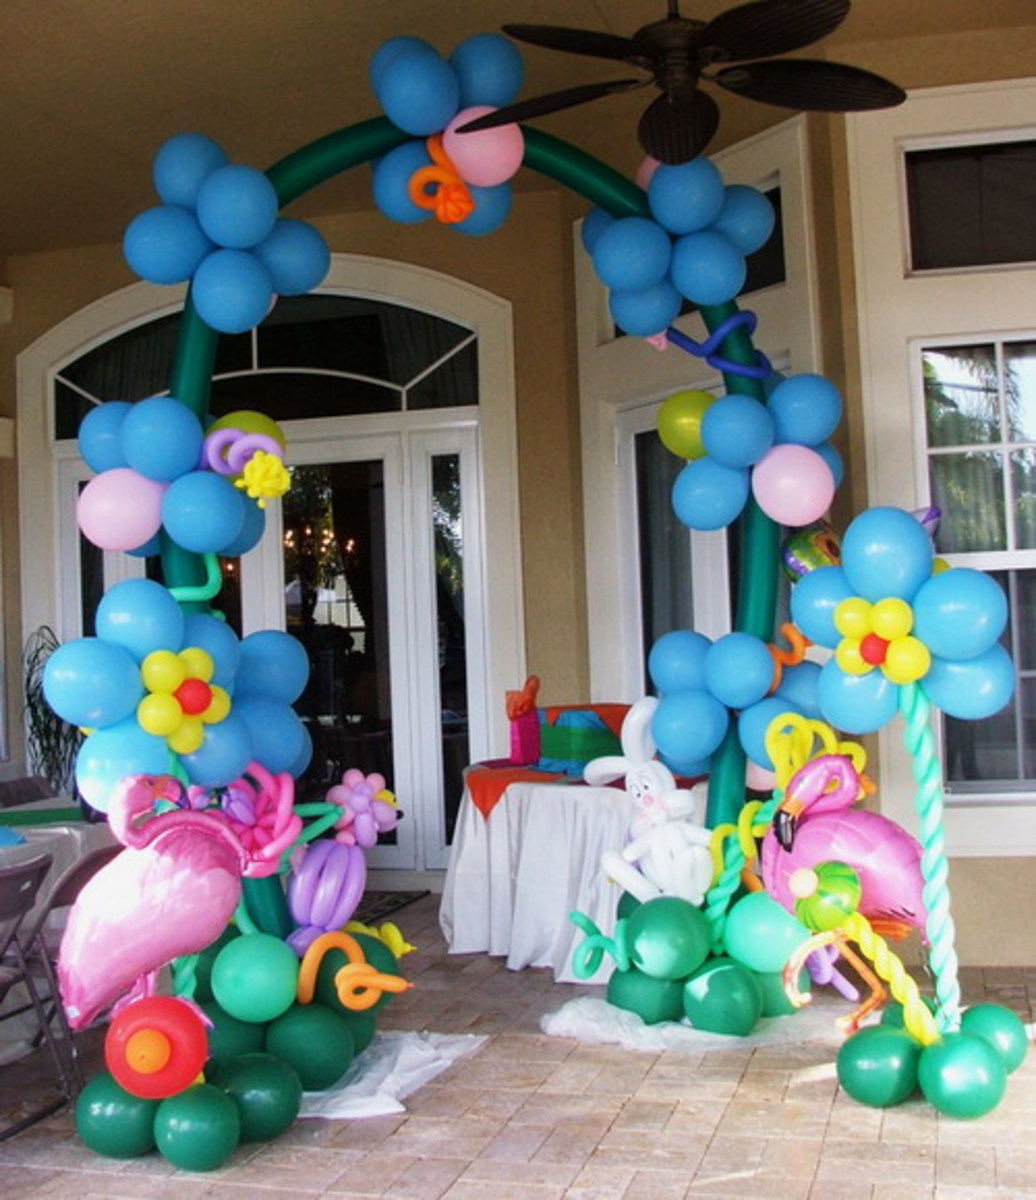 My Favorite Photos of Alice in Wonderland Party Decorations